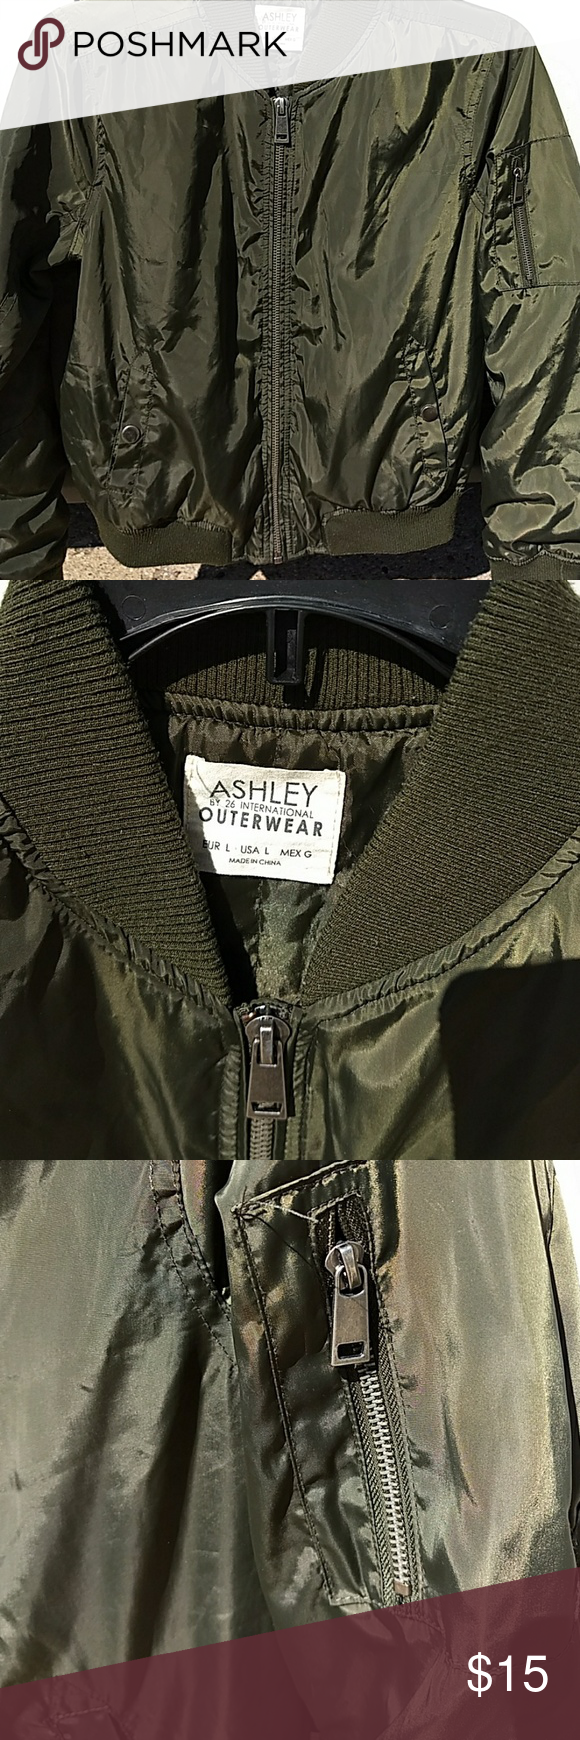 Ashley Outerwear Womens Green Large Jacket Clothes Design Outerwear Jackets [ 1740 x 580 Pixel ]